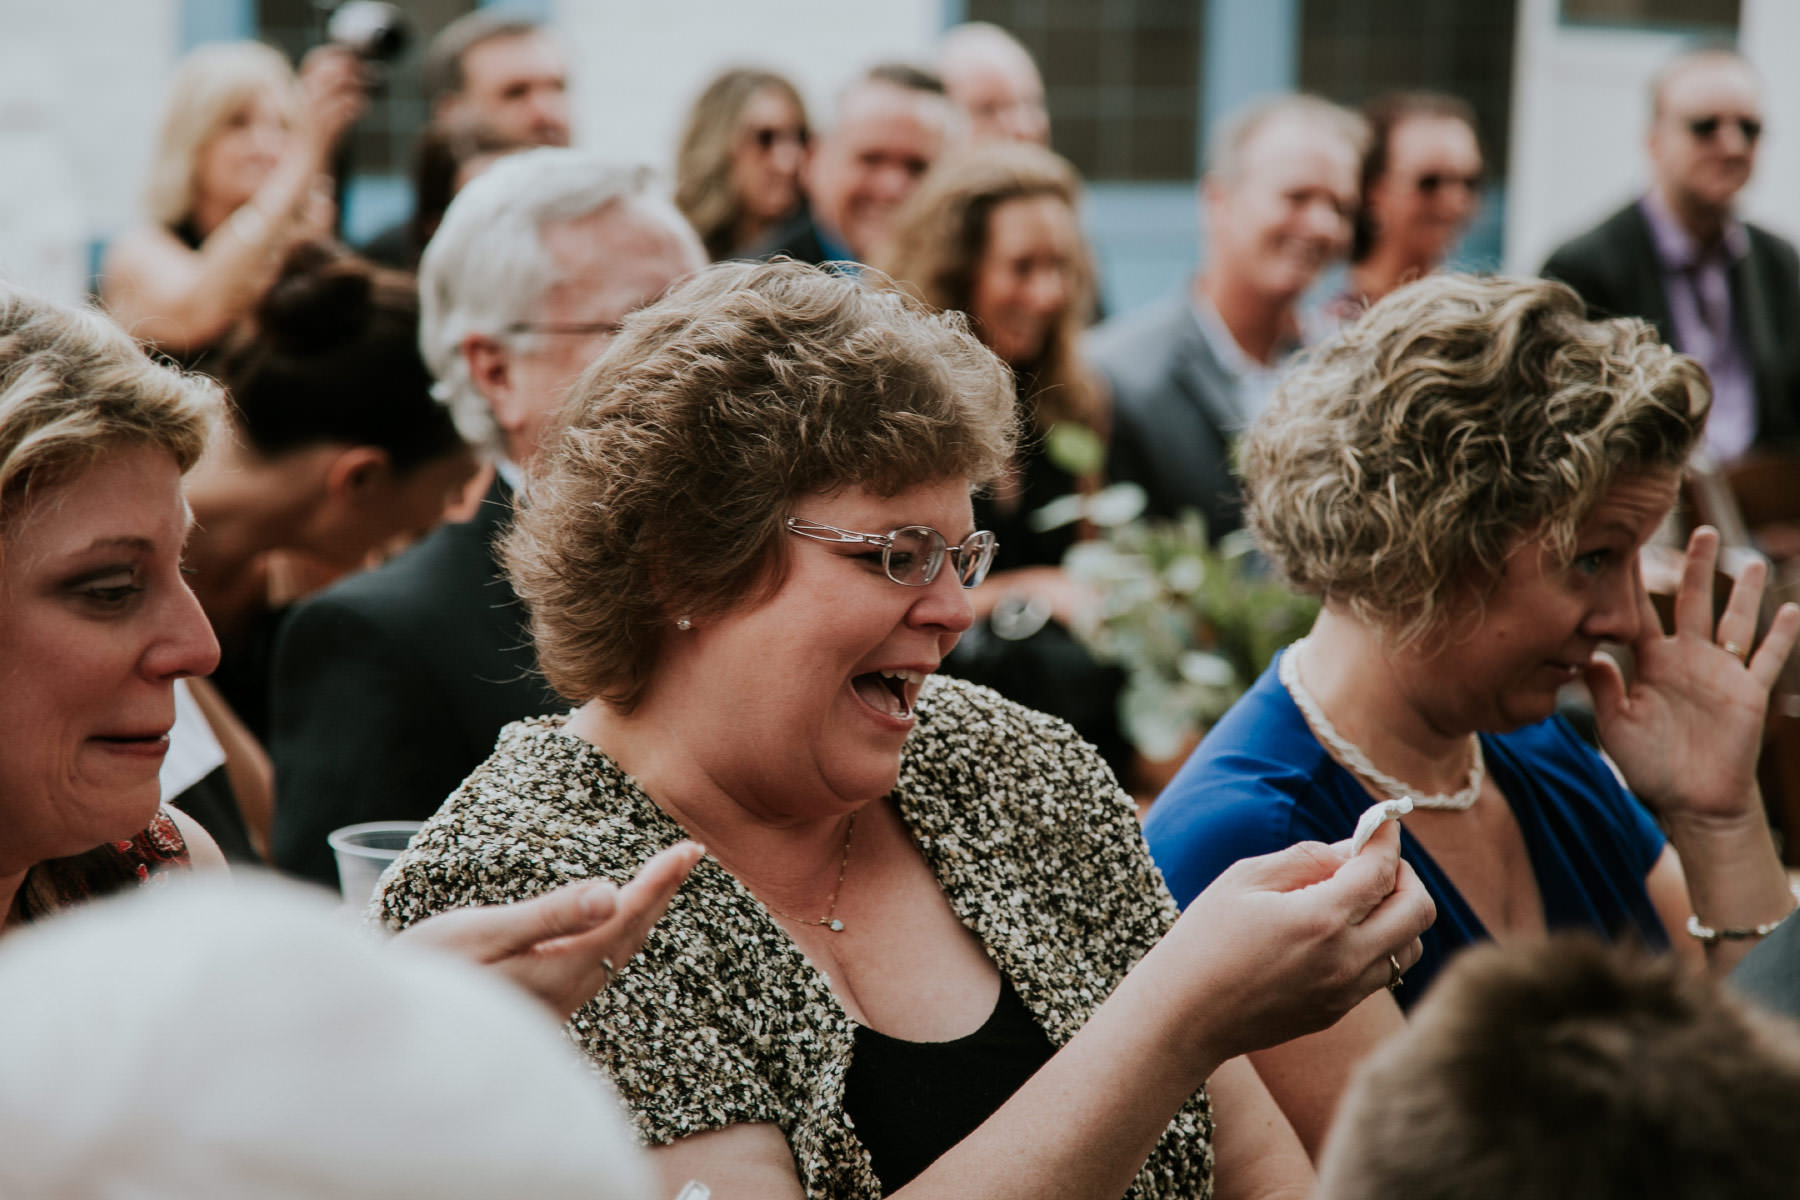 Guests wiping away tears while laughing during ceremony